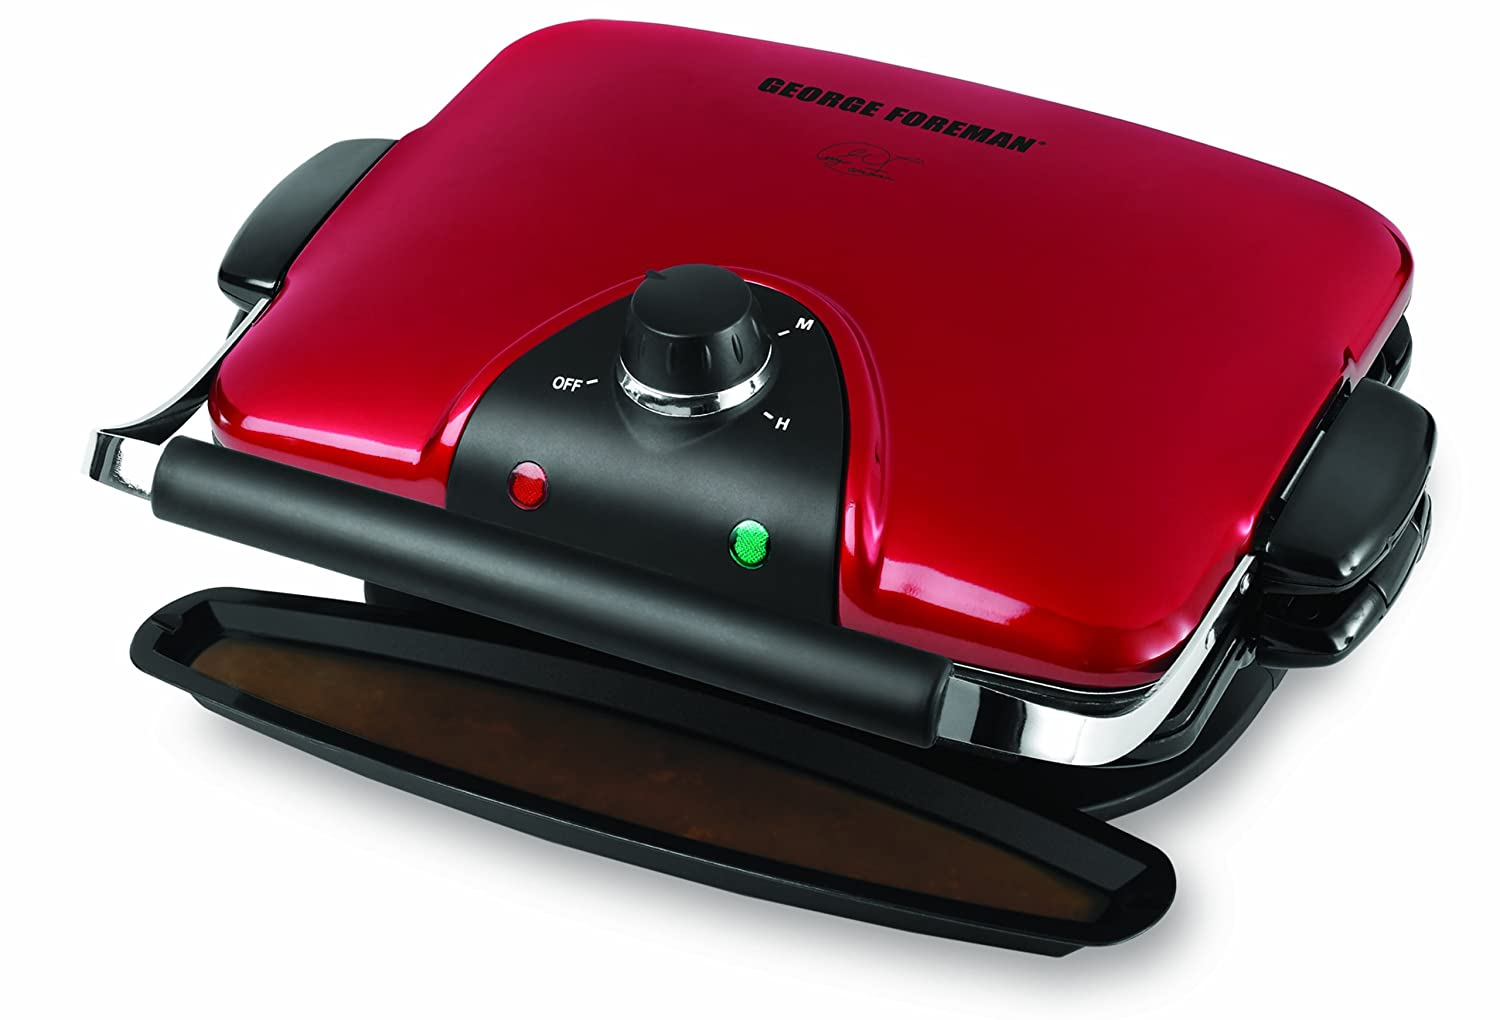 George Foreman GRP92R Indoor Electric Grill 1 Red